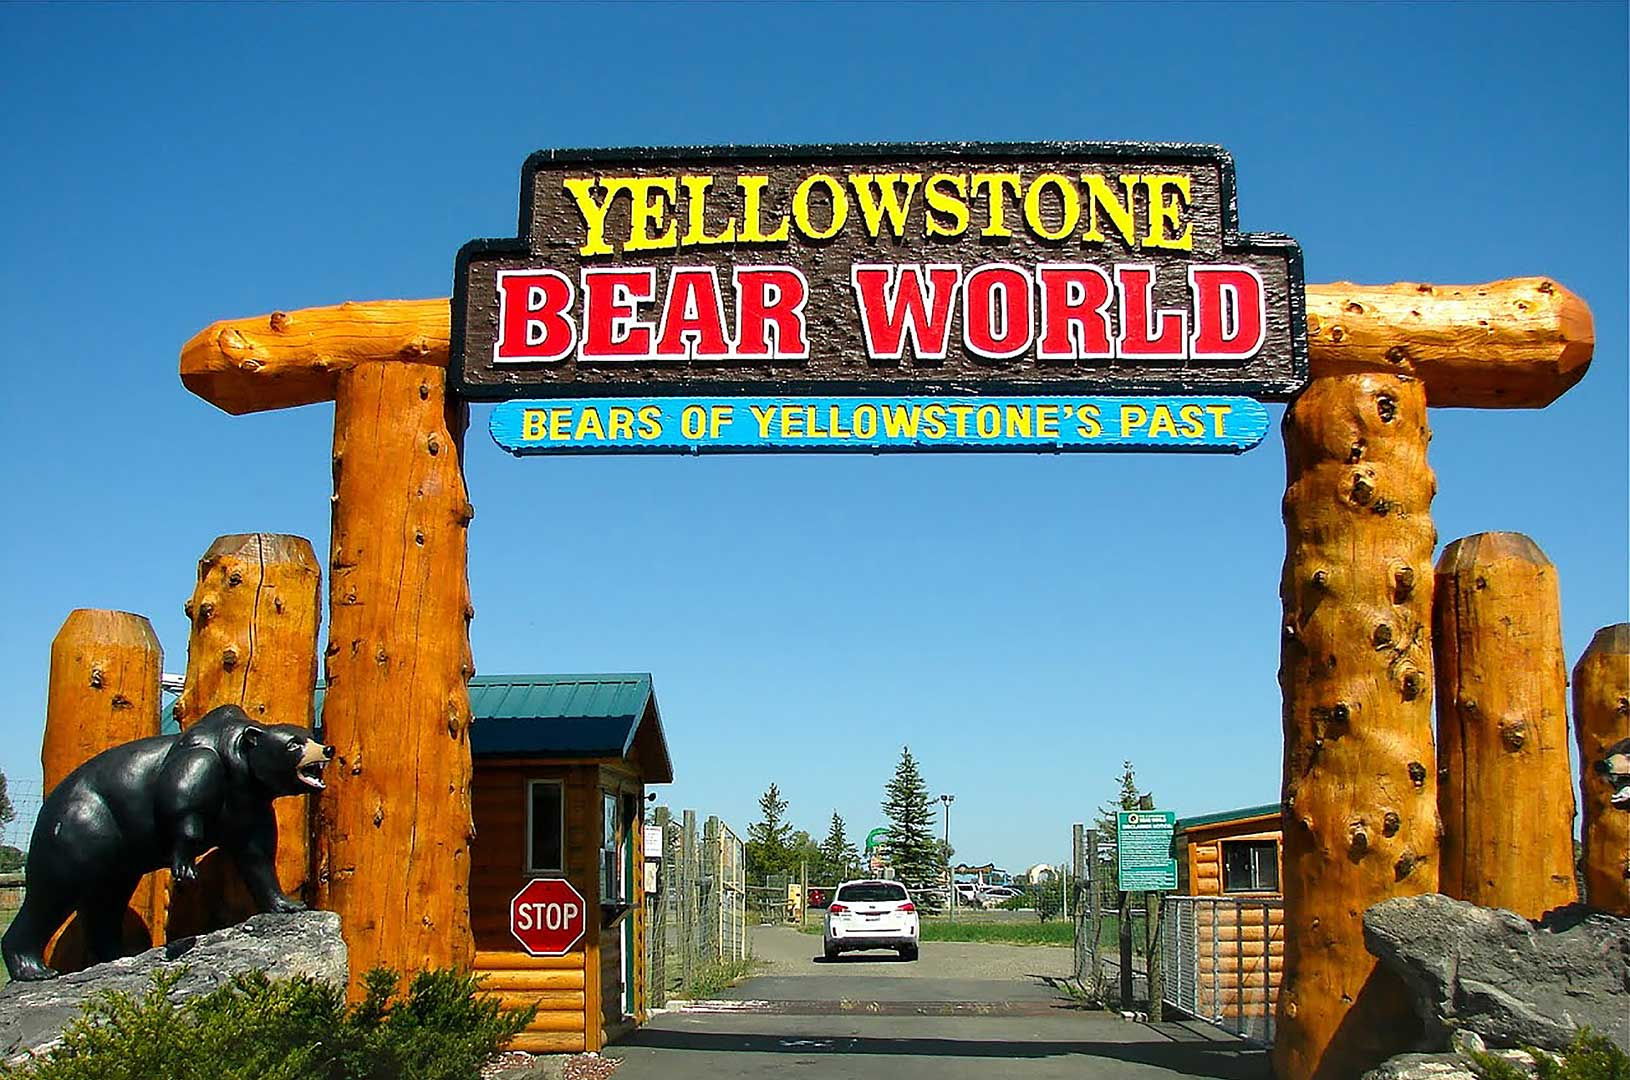 Entrance to Yellowstone Bear World in Rexburg Idaho